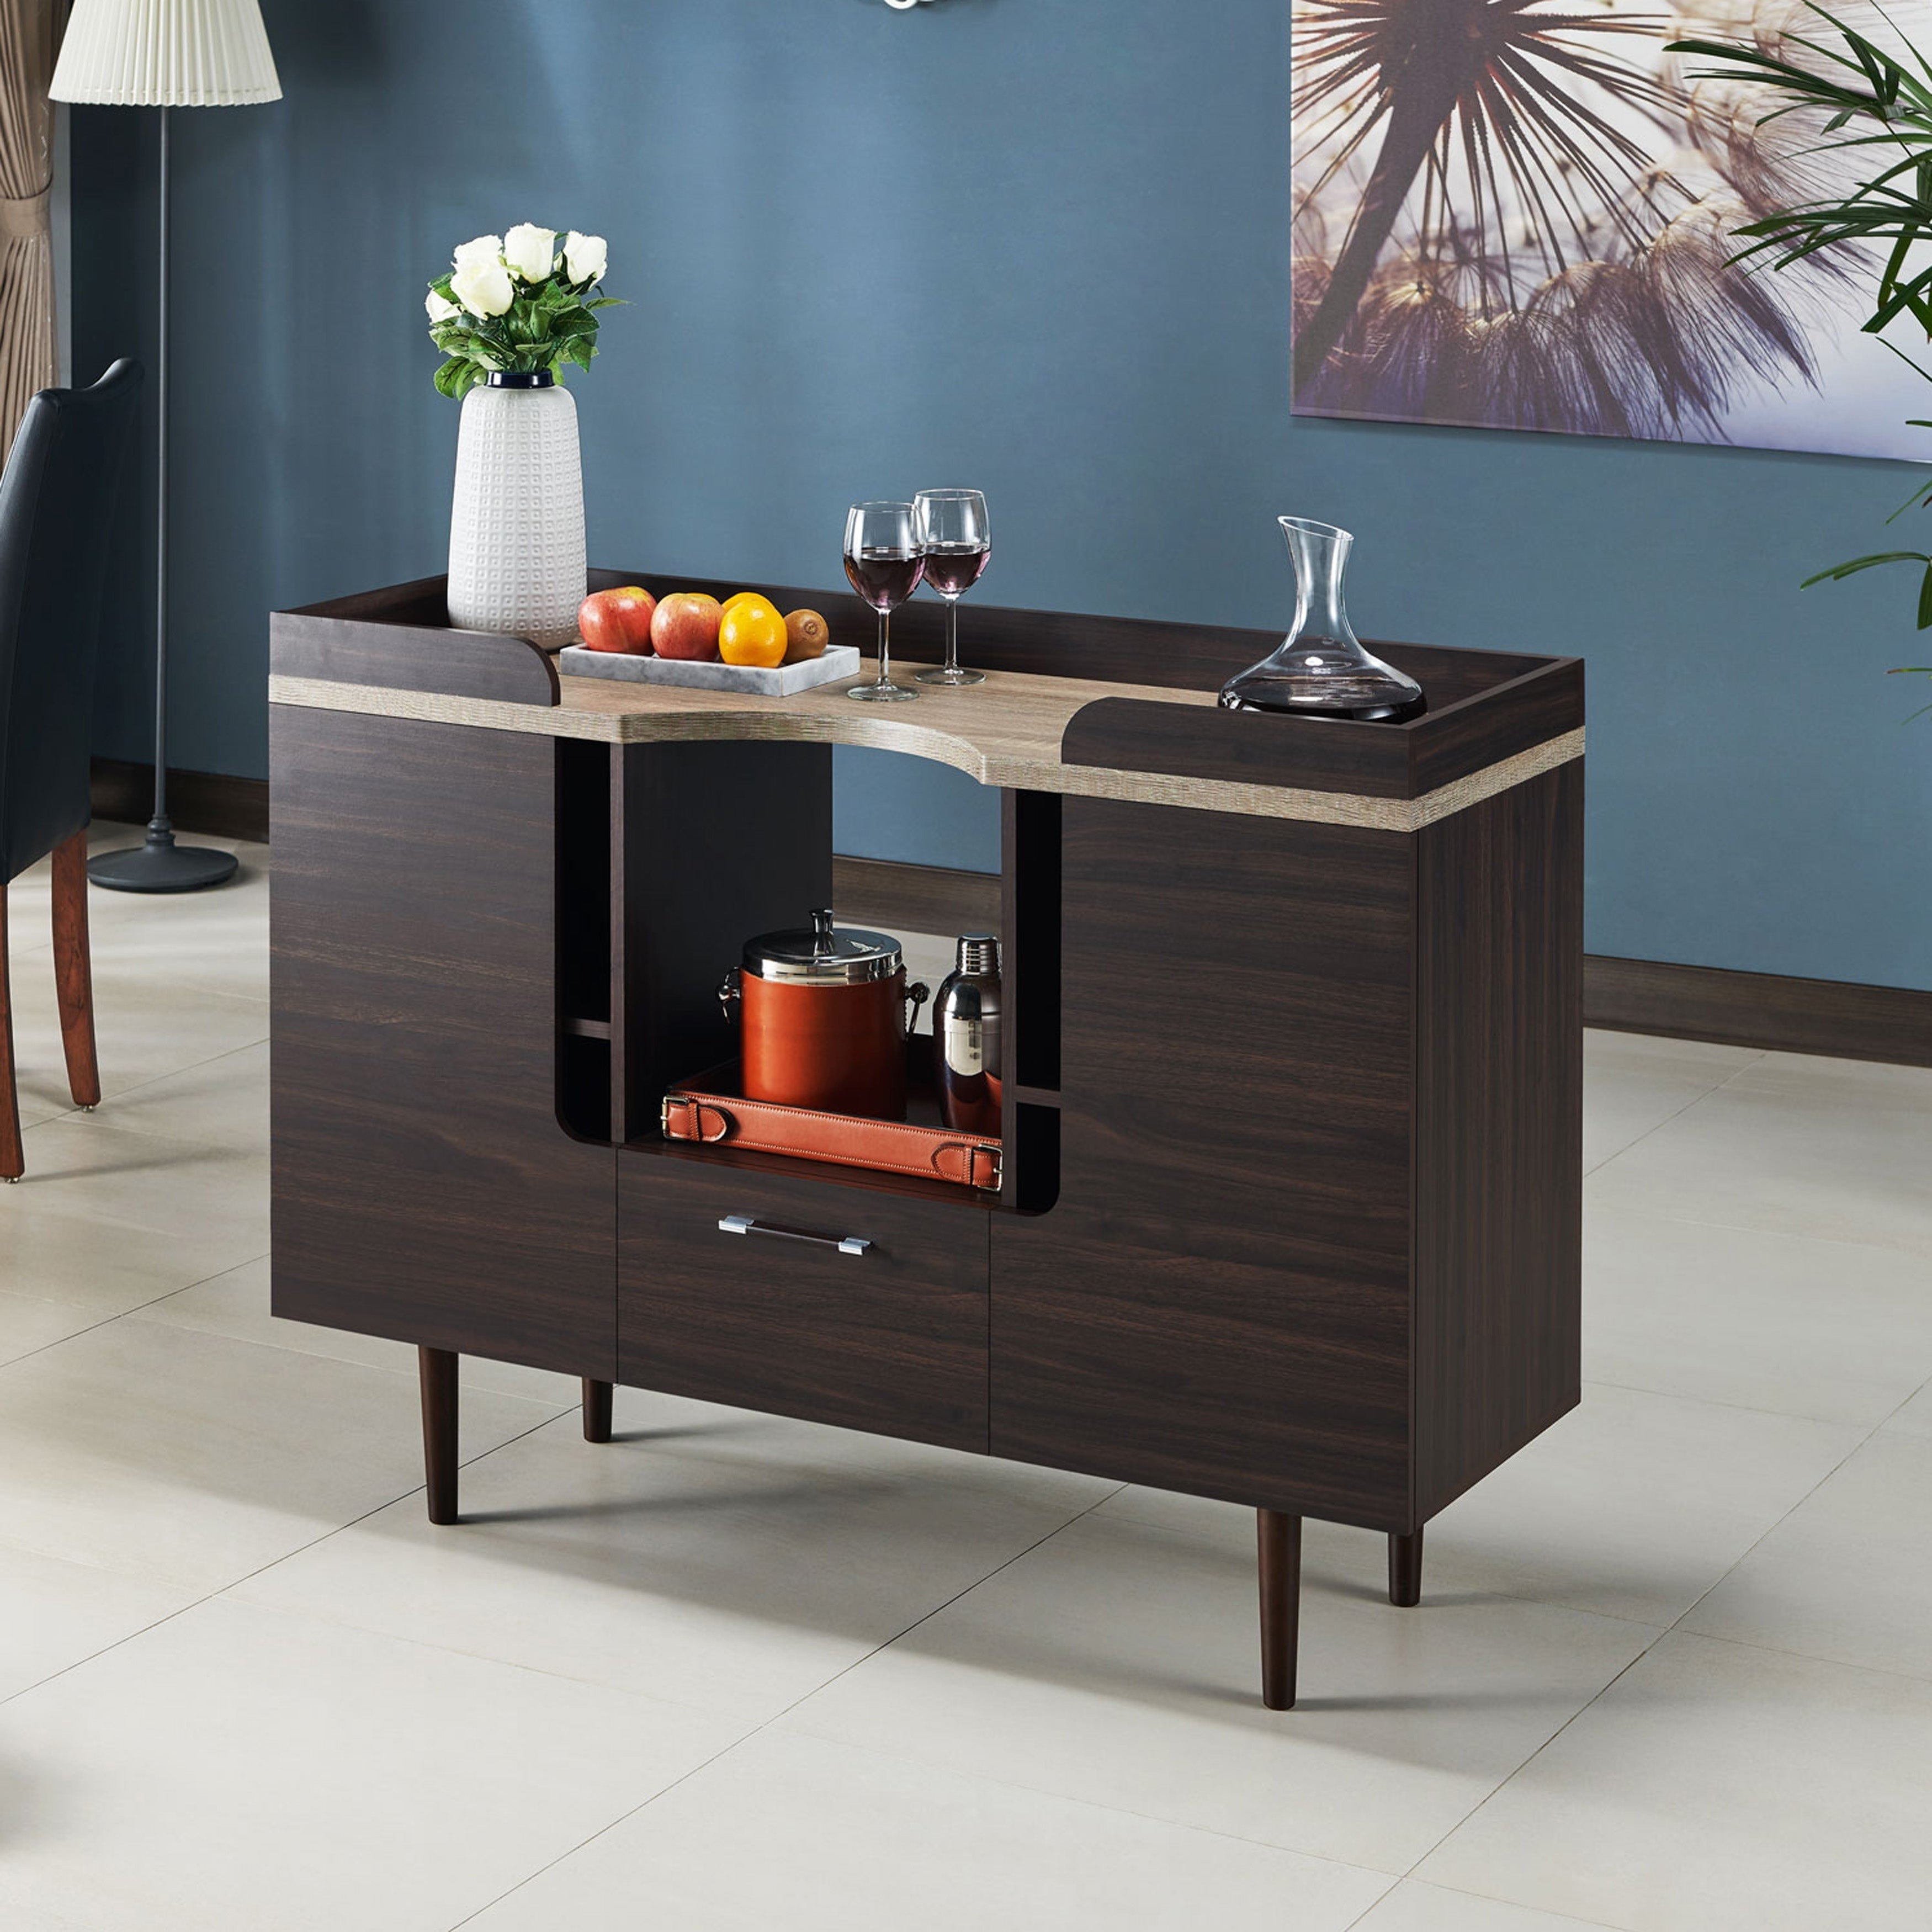 Pattermon Mid Century Modern Two Tone Wenge Buffet Serverfoa With Regard To Modern Mid Century Buffets (View 9 of 30)